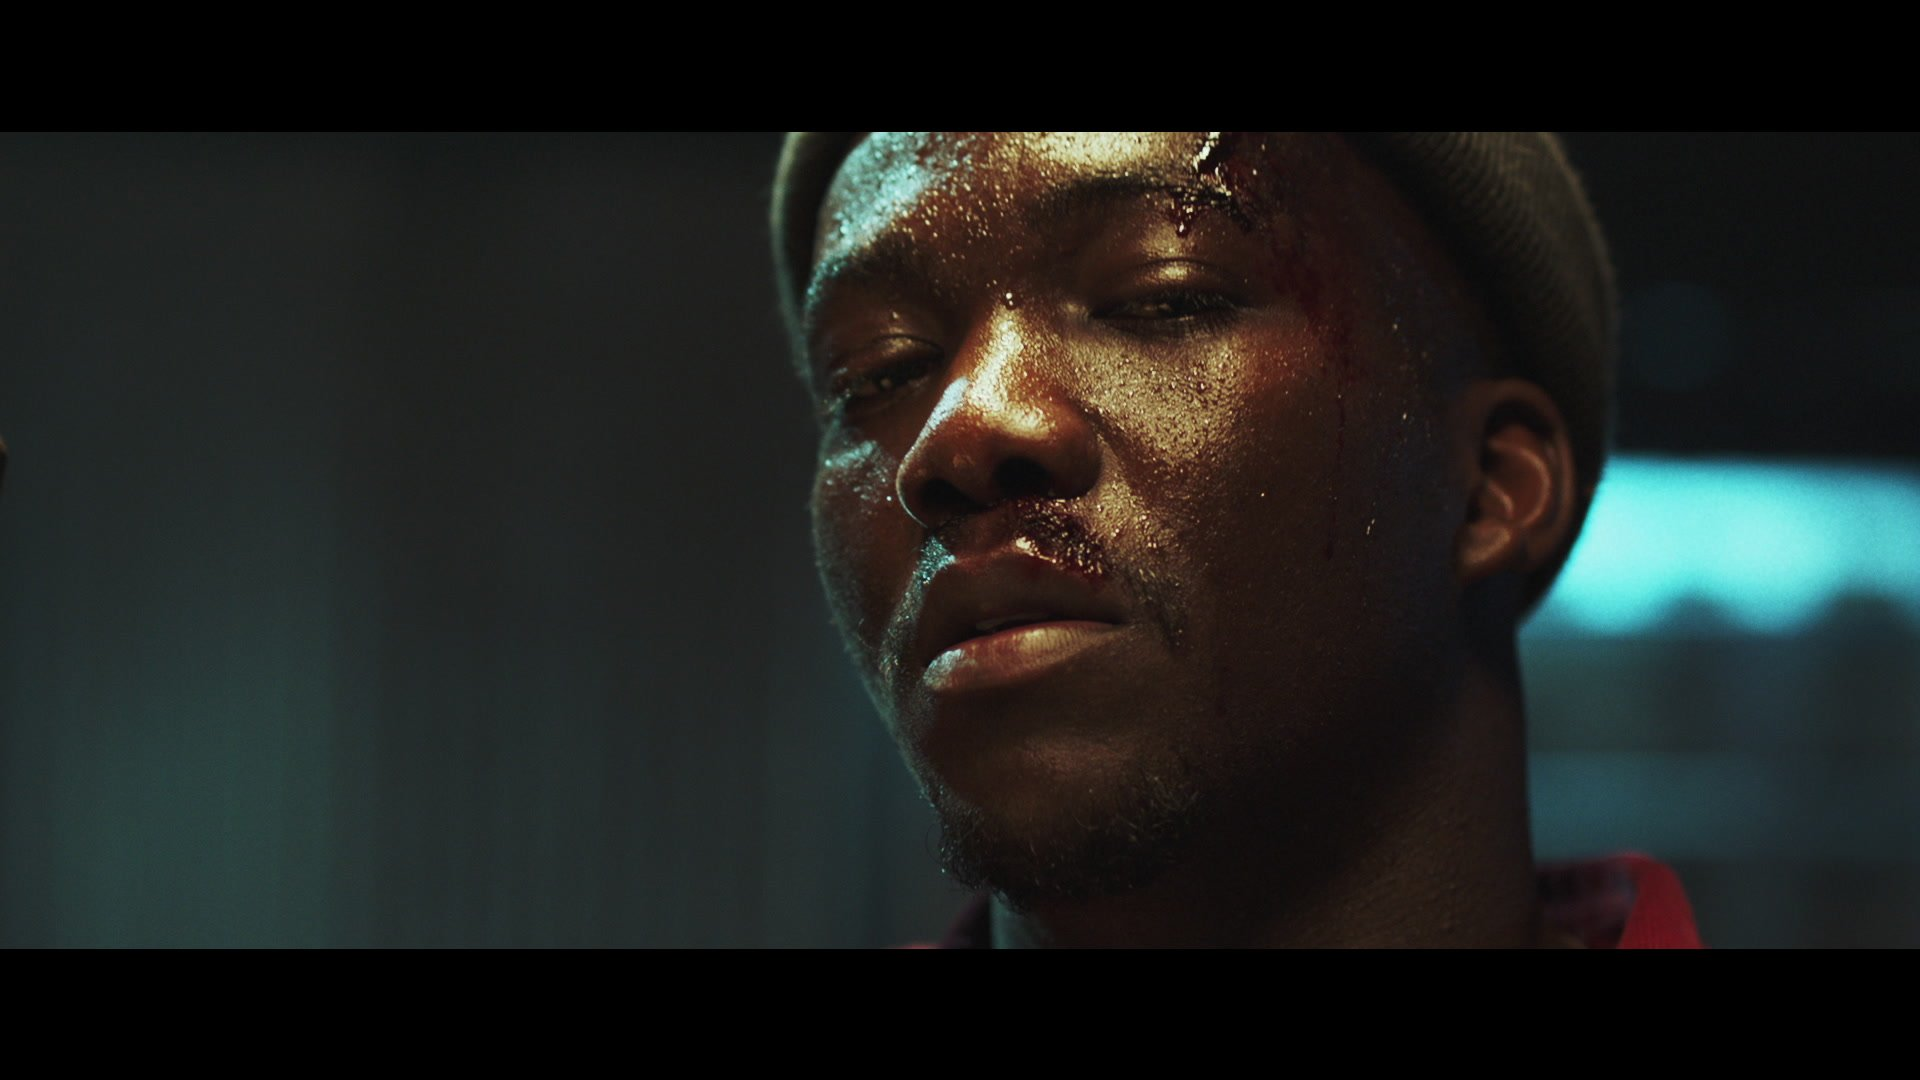 .@i_D premieres the all new @MrJacobBanks video for #Chainsmoking https://t.co/v0k2itxMRP https://t.co/fYJ2CpnDQ1